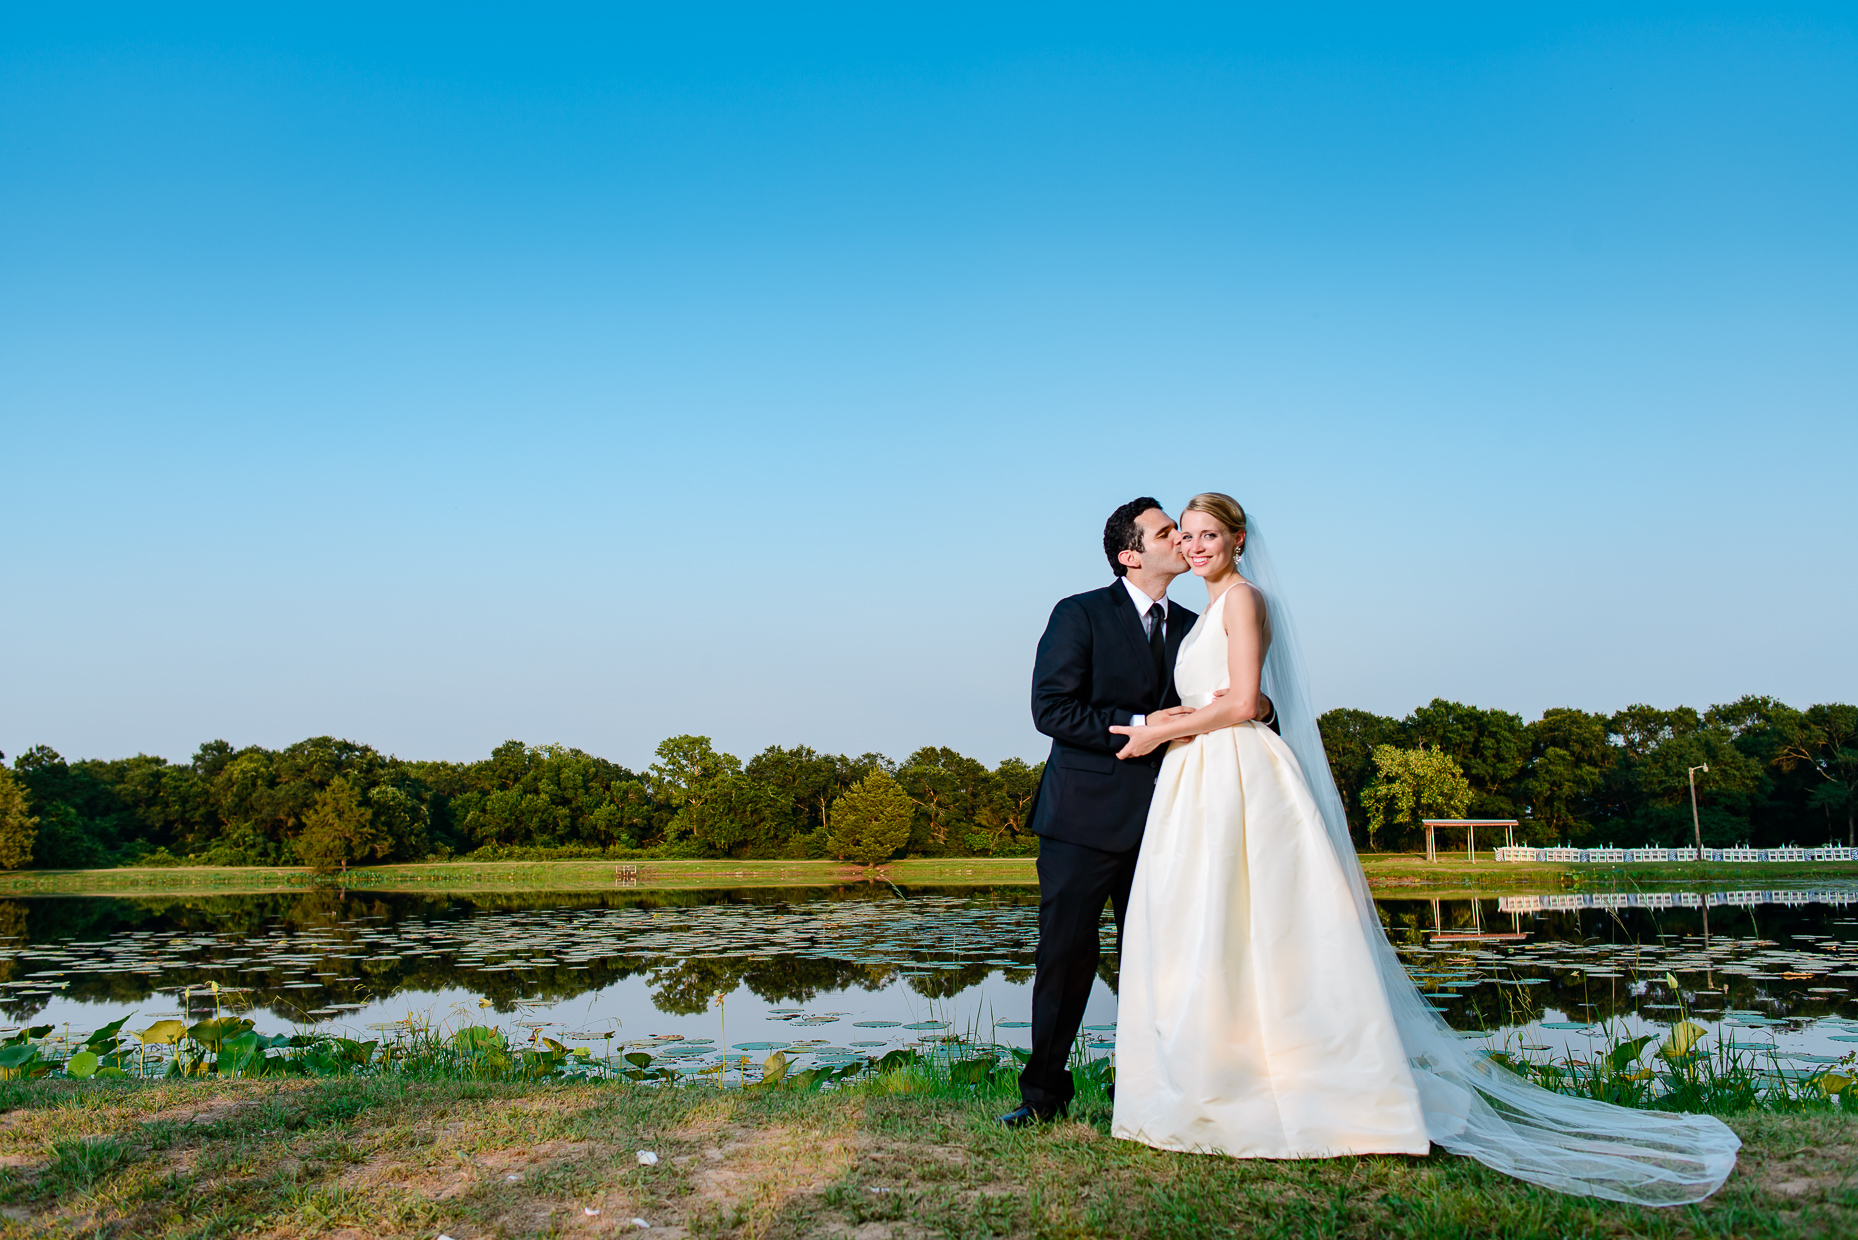 Austin-Wedding-Photographer-Texas-Photography-Songbird-Fine-Art